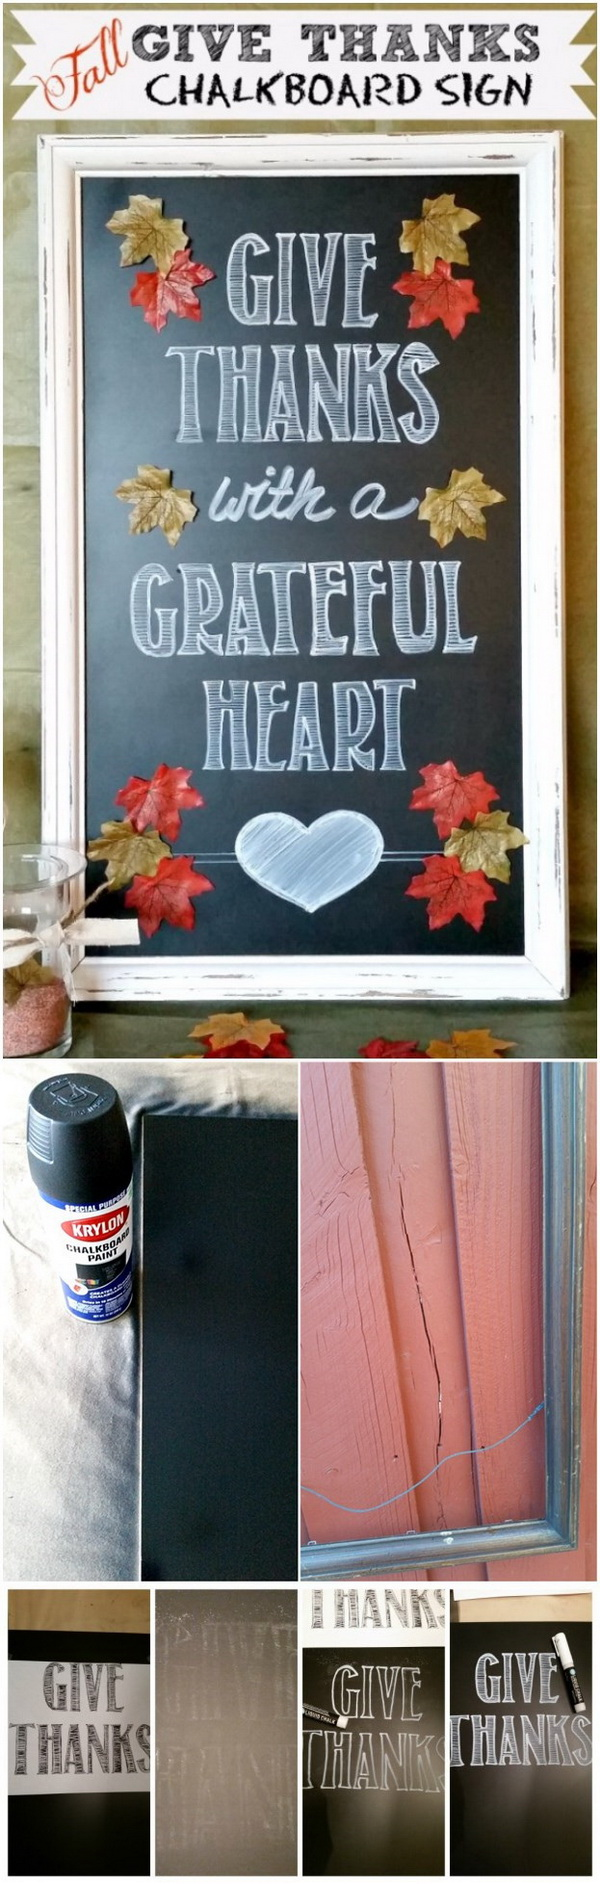 Fall Give Thanks Chalkboard Sign. Upcycle the old frame in your garage into something wonderful for your fall and Thanksgiving decoration! Now, it's reborn into a Fall Give Thanks Chalkboard Sign!